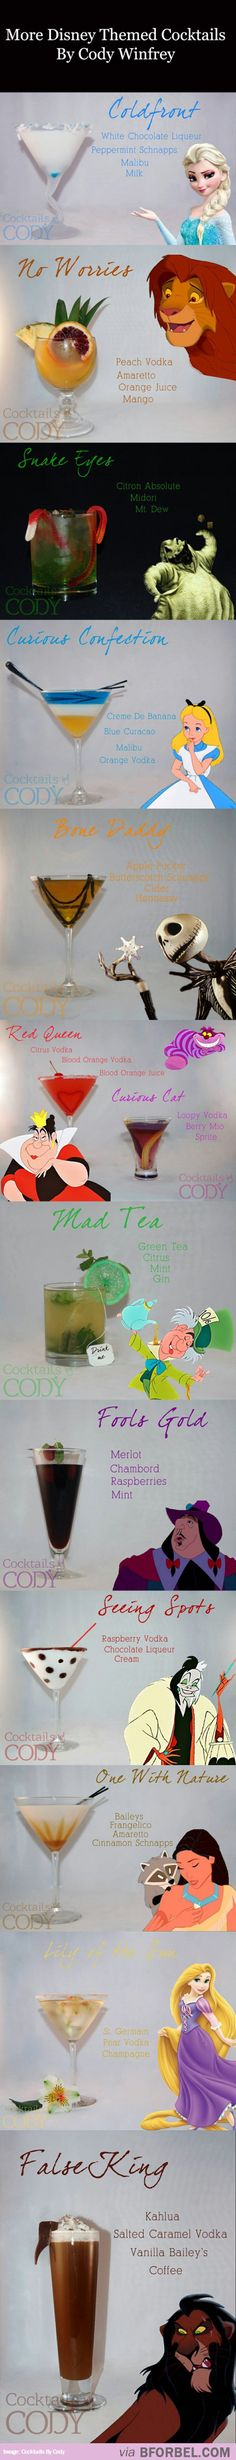 12 More Disney-Themed Cocktails… @Emily Schoenfeld Schoenfeld Schoenfeld Schoenfeld Corkum  - the No Worries was made for us